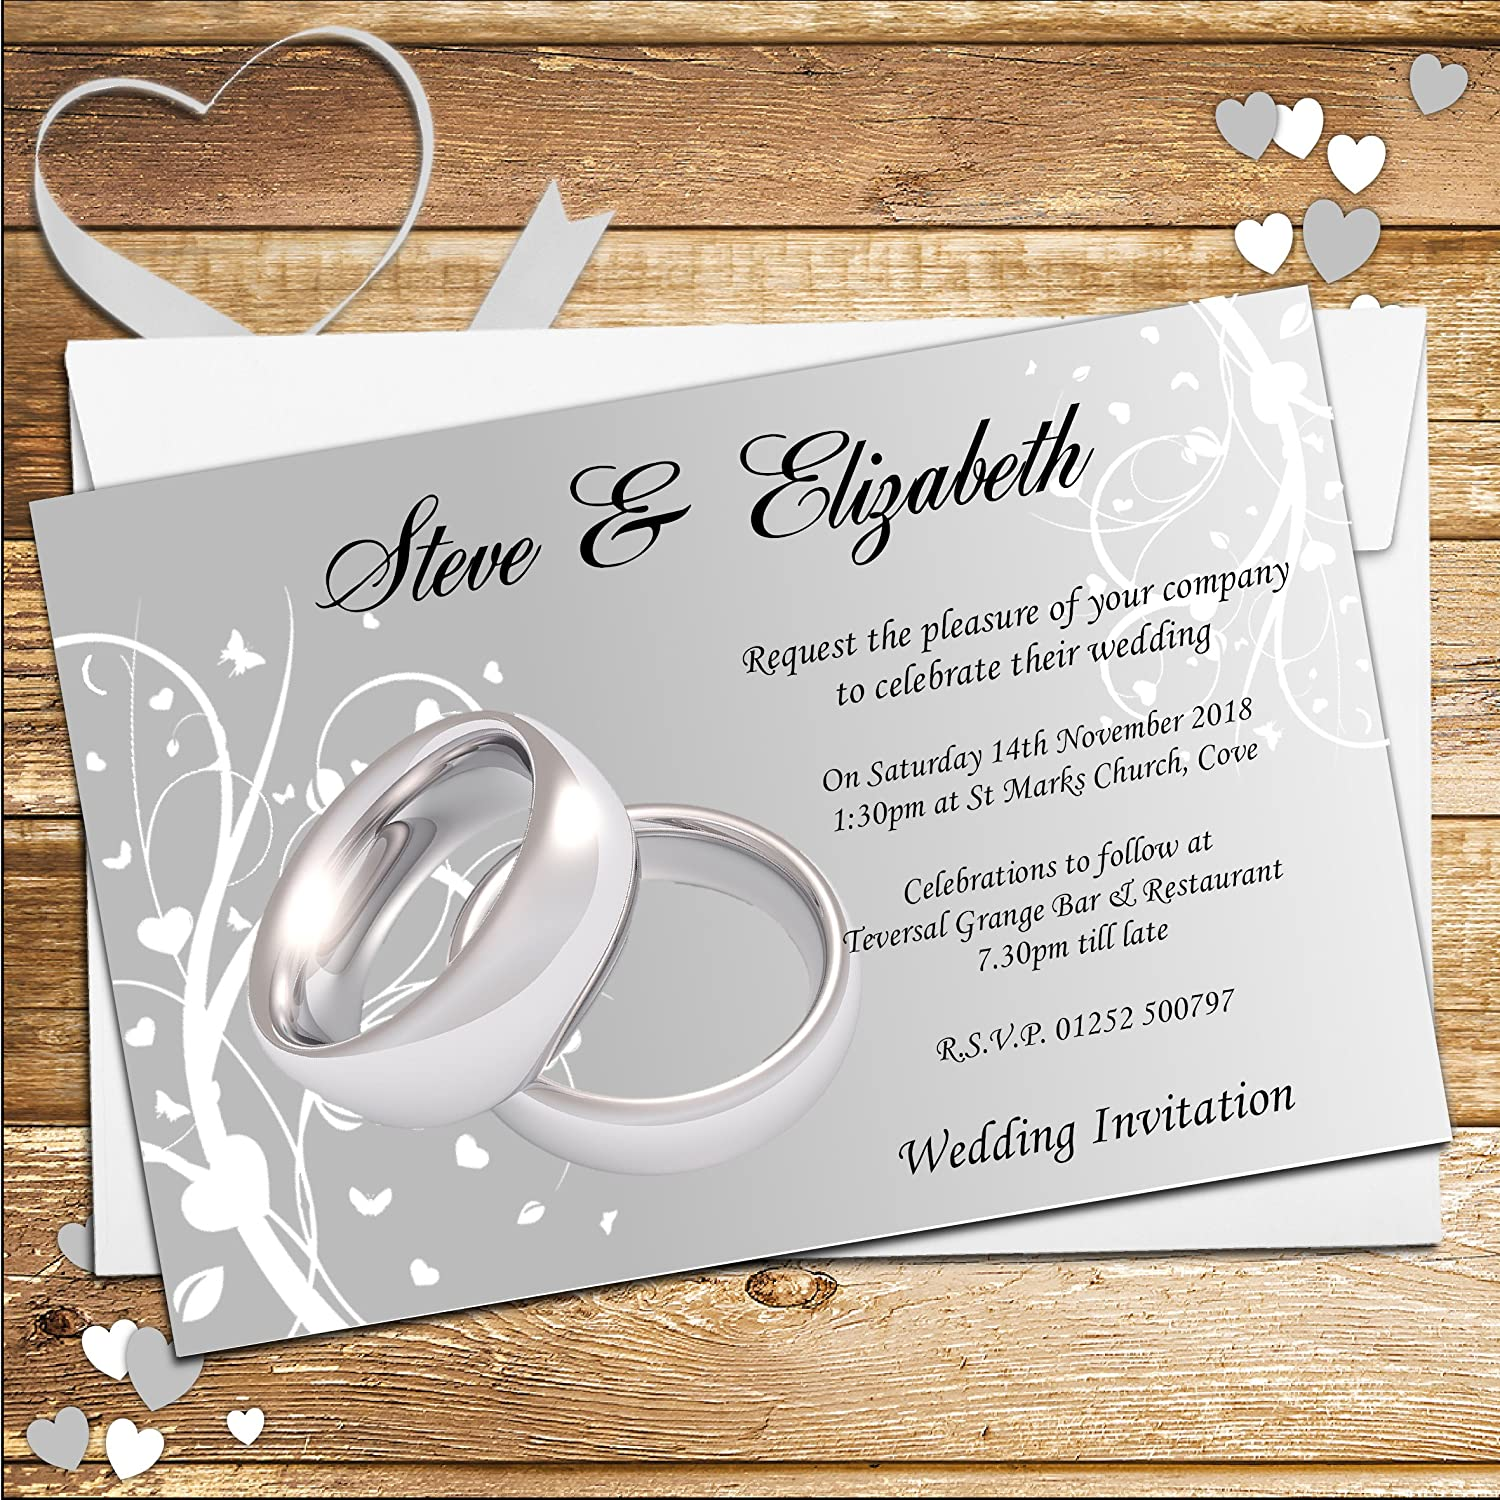 10 personalised silver rings wedding invitations n44 amazon 10 personalised silver rings wedding invitations n44 amazon kitchen home stopboris Choice Image